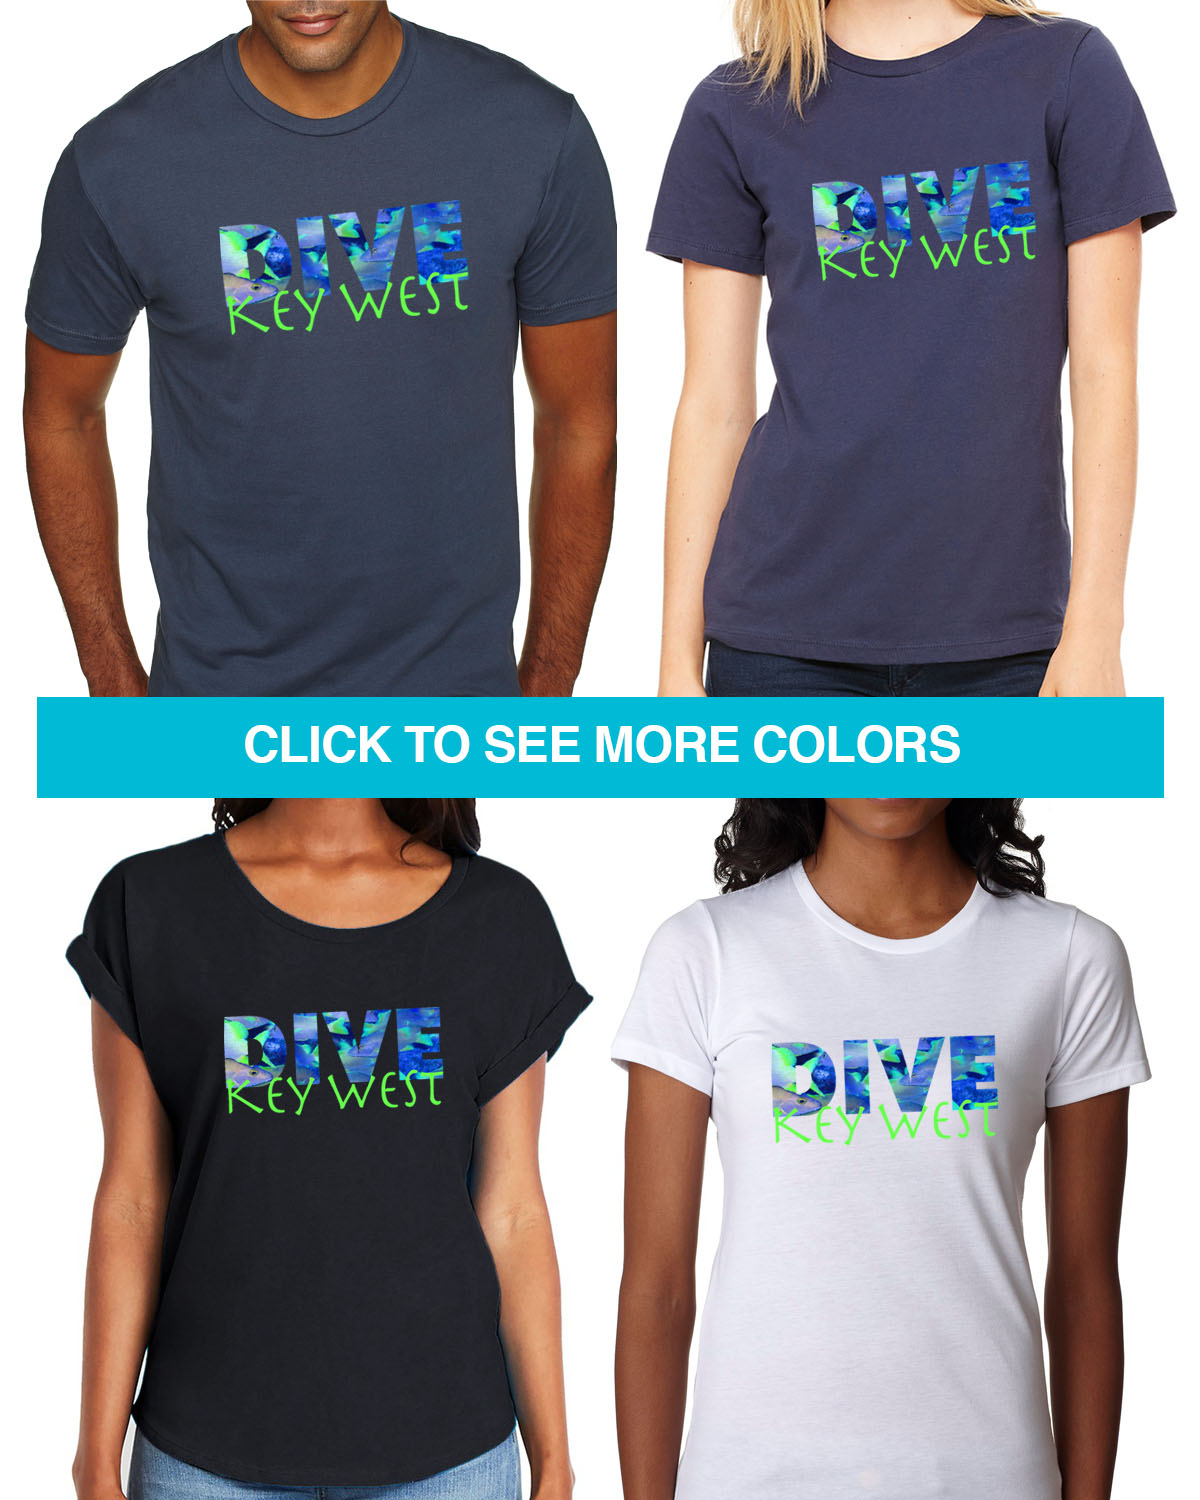 Short sleeve Dive Key West t-shirt for men and women